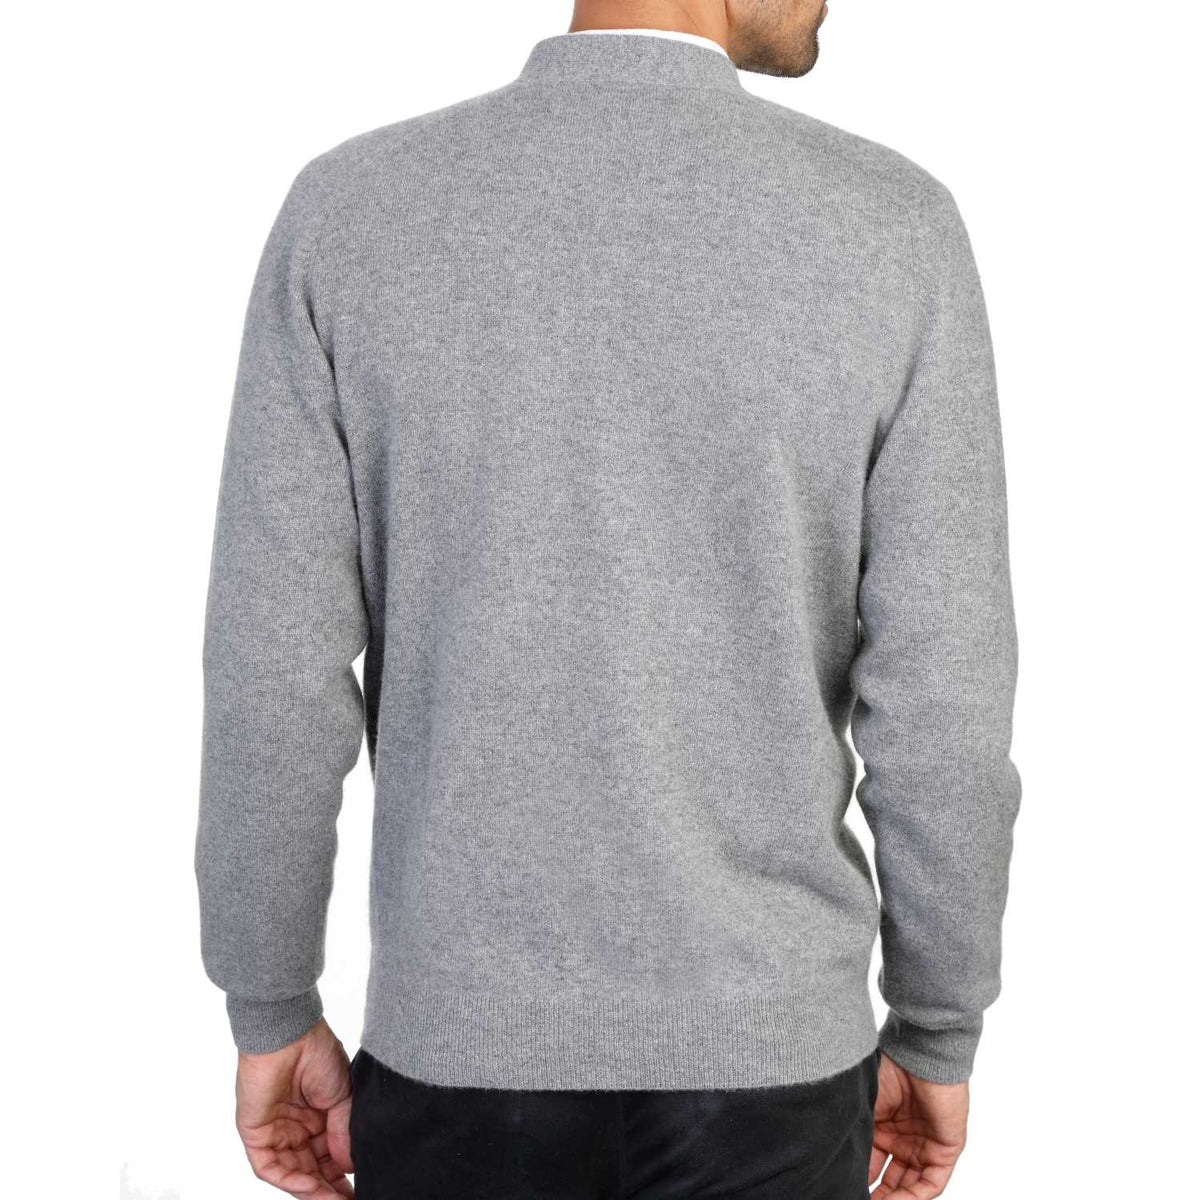 Mens Black Cashmere Cardigan | Grey | Shop at The Cashmere Choice | London